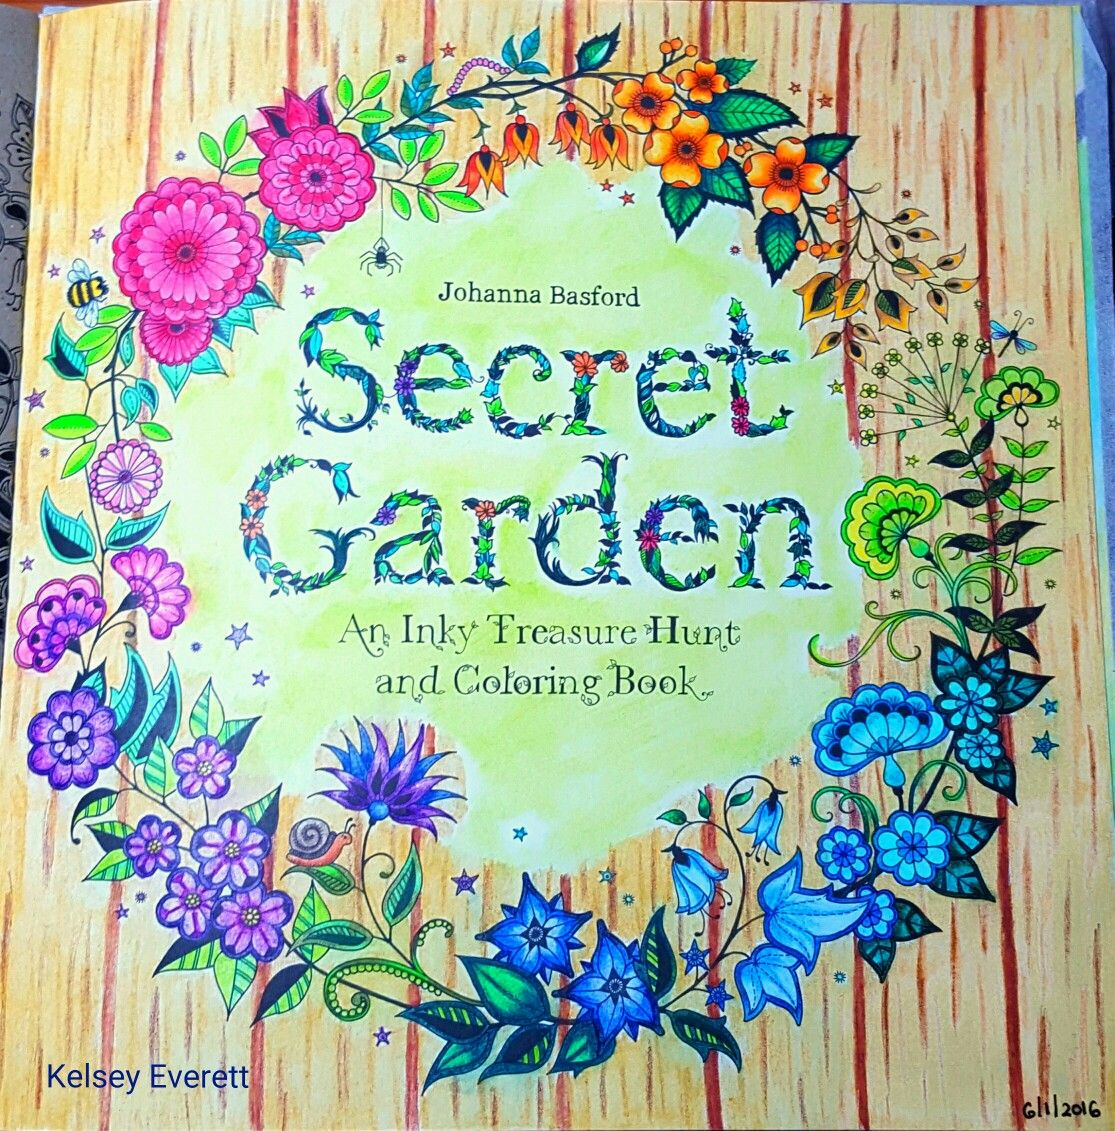 Johanna Basfords Secret Garden Coloring Book Title Page Colored By Kelsey Everett